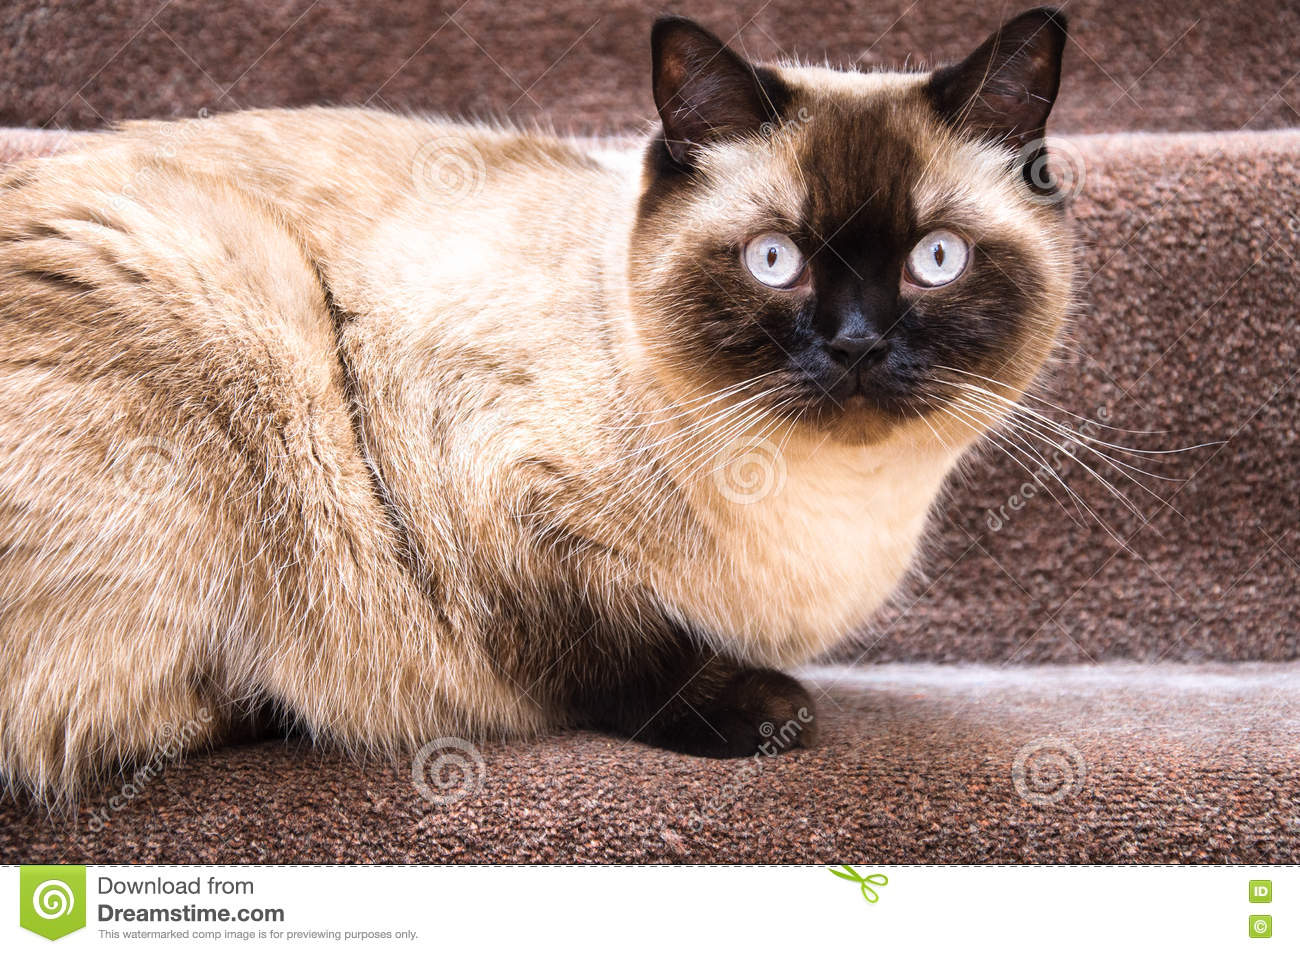 British Chocolate Cat Stock Photos, Images, & Pictures - 355 Images